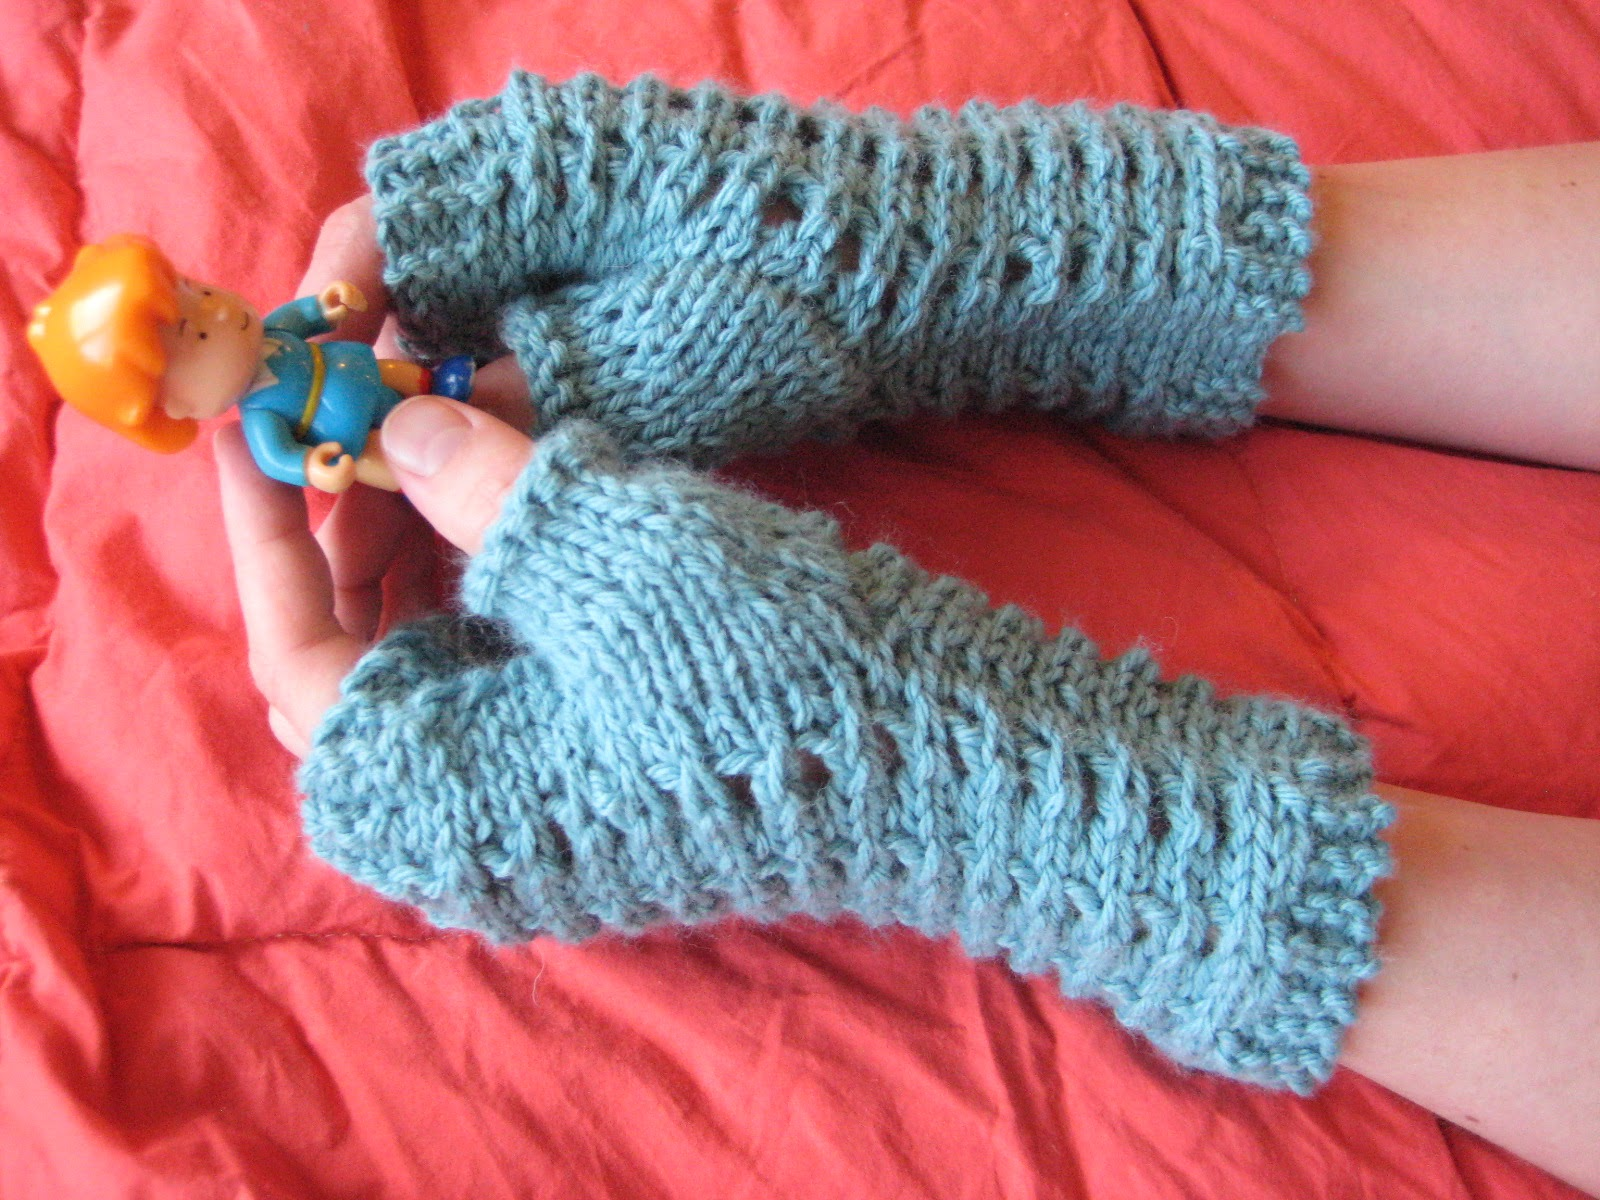 Knit Mesh Stitch In The Round : Balls to the Walls Knits: Slip-Stitch Mesh Fingerless Gloves